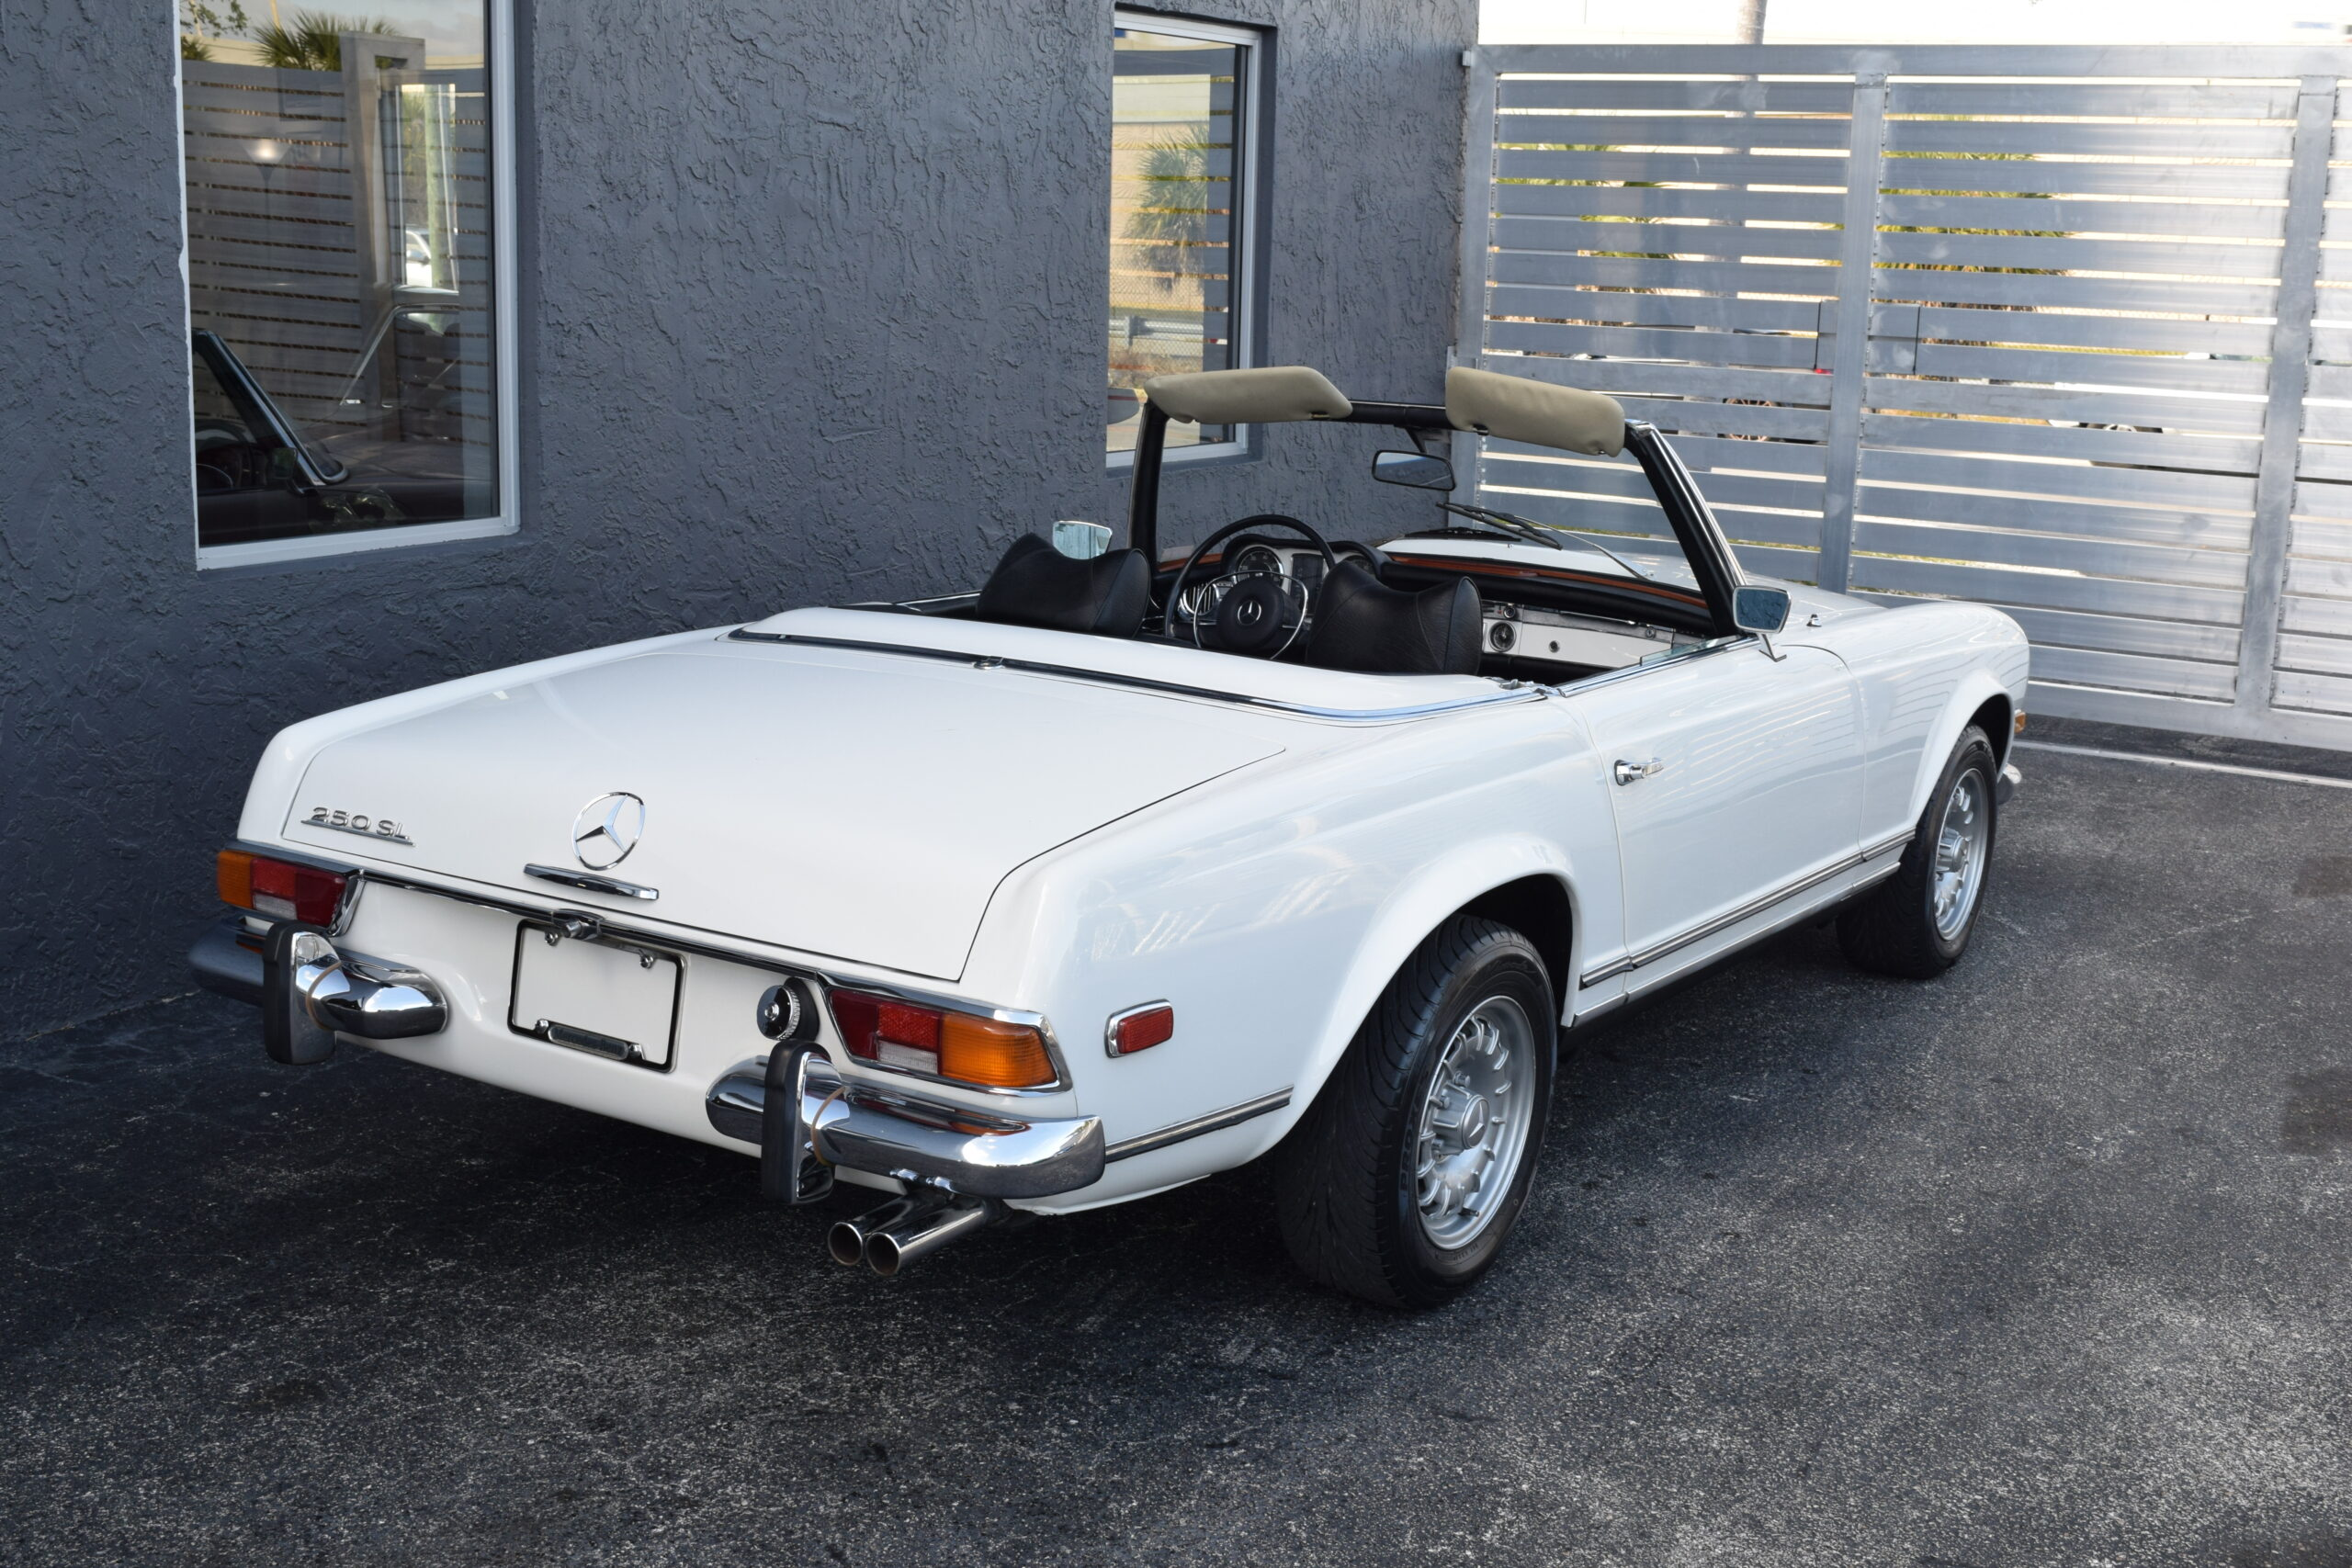 """1968 Mercedes 250 SL """"Pagoda"""", 4-Speed manual, AC and Power Steering, unrestored in amazing time capsule condition"""